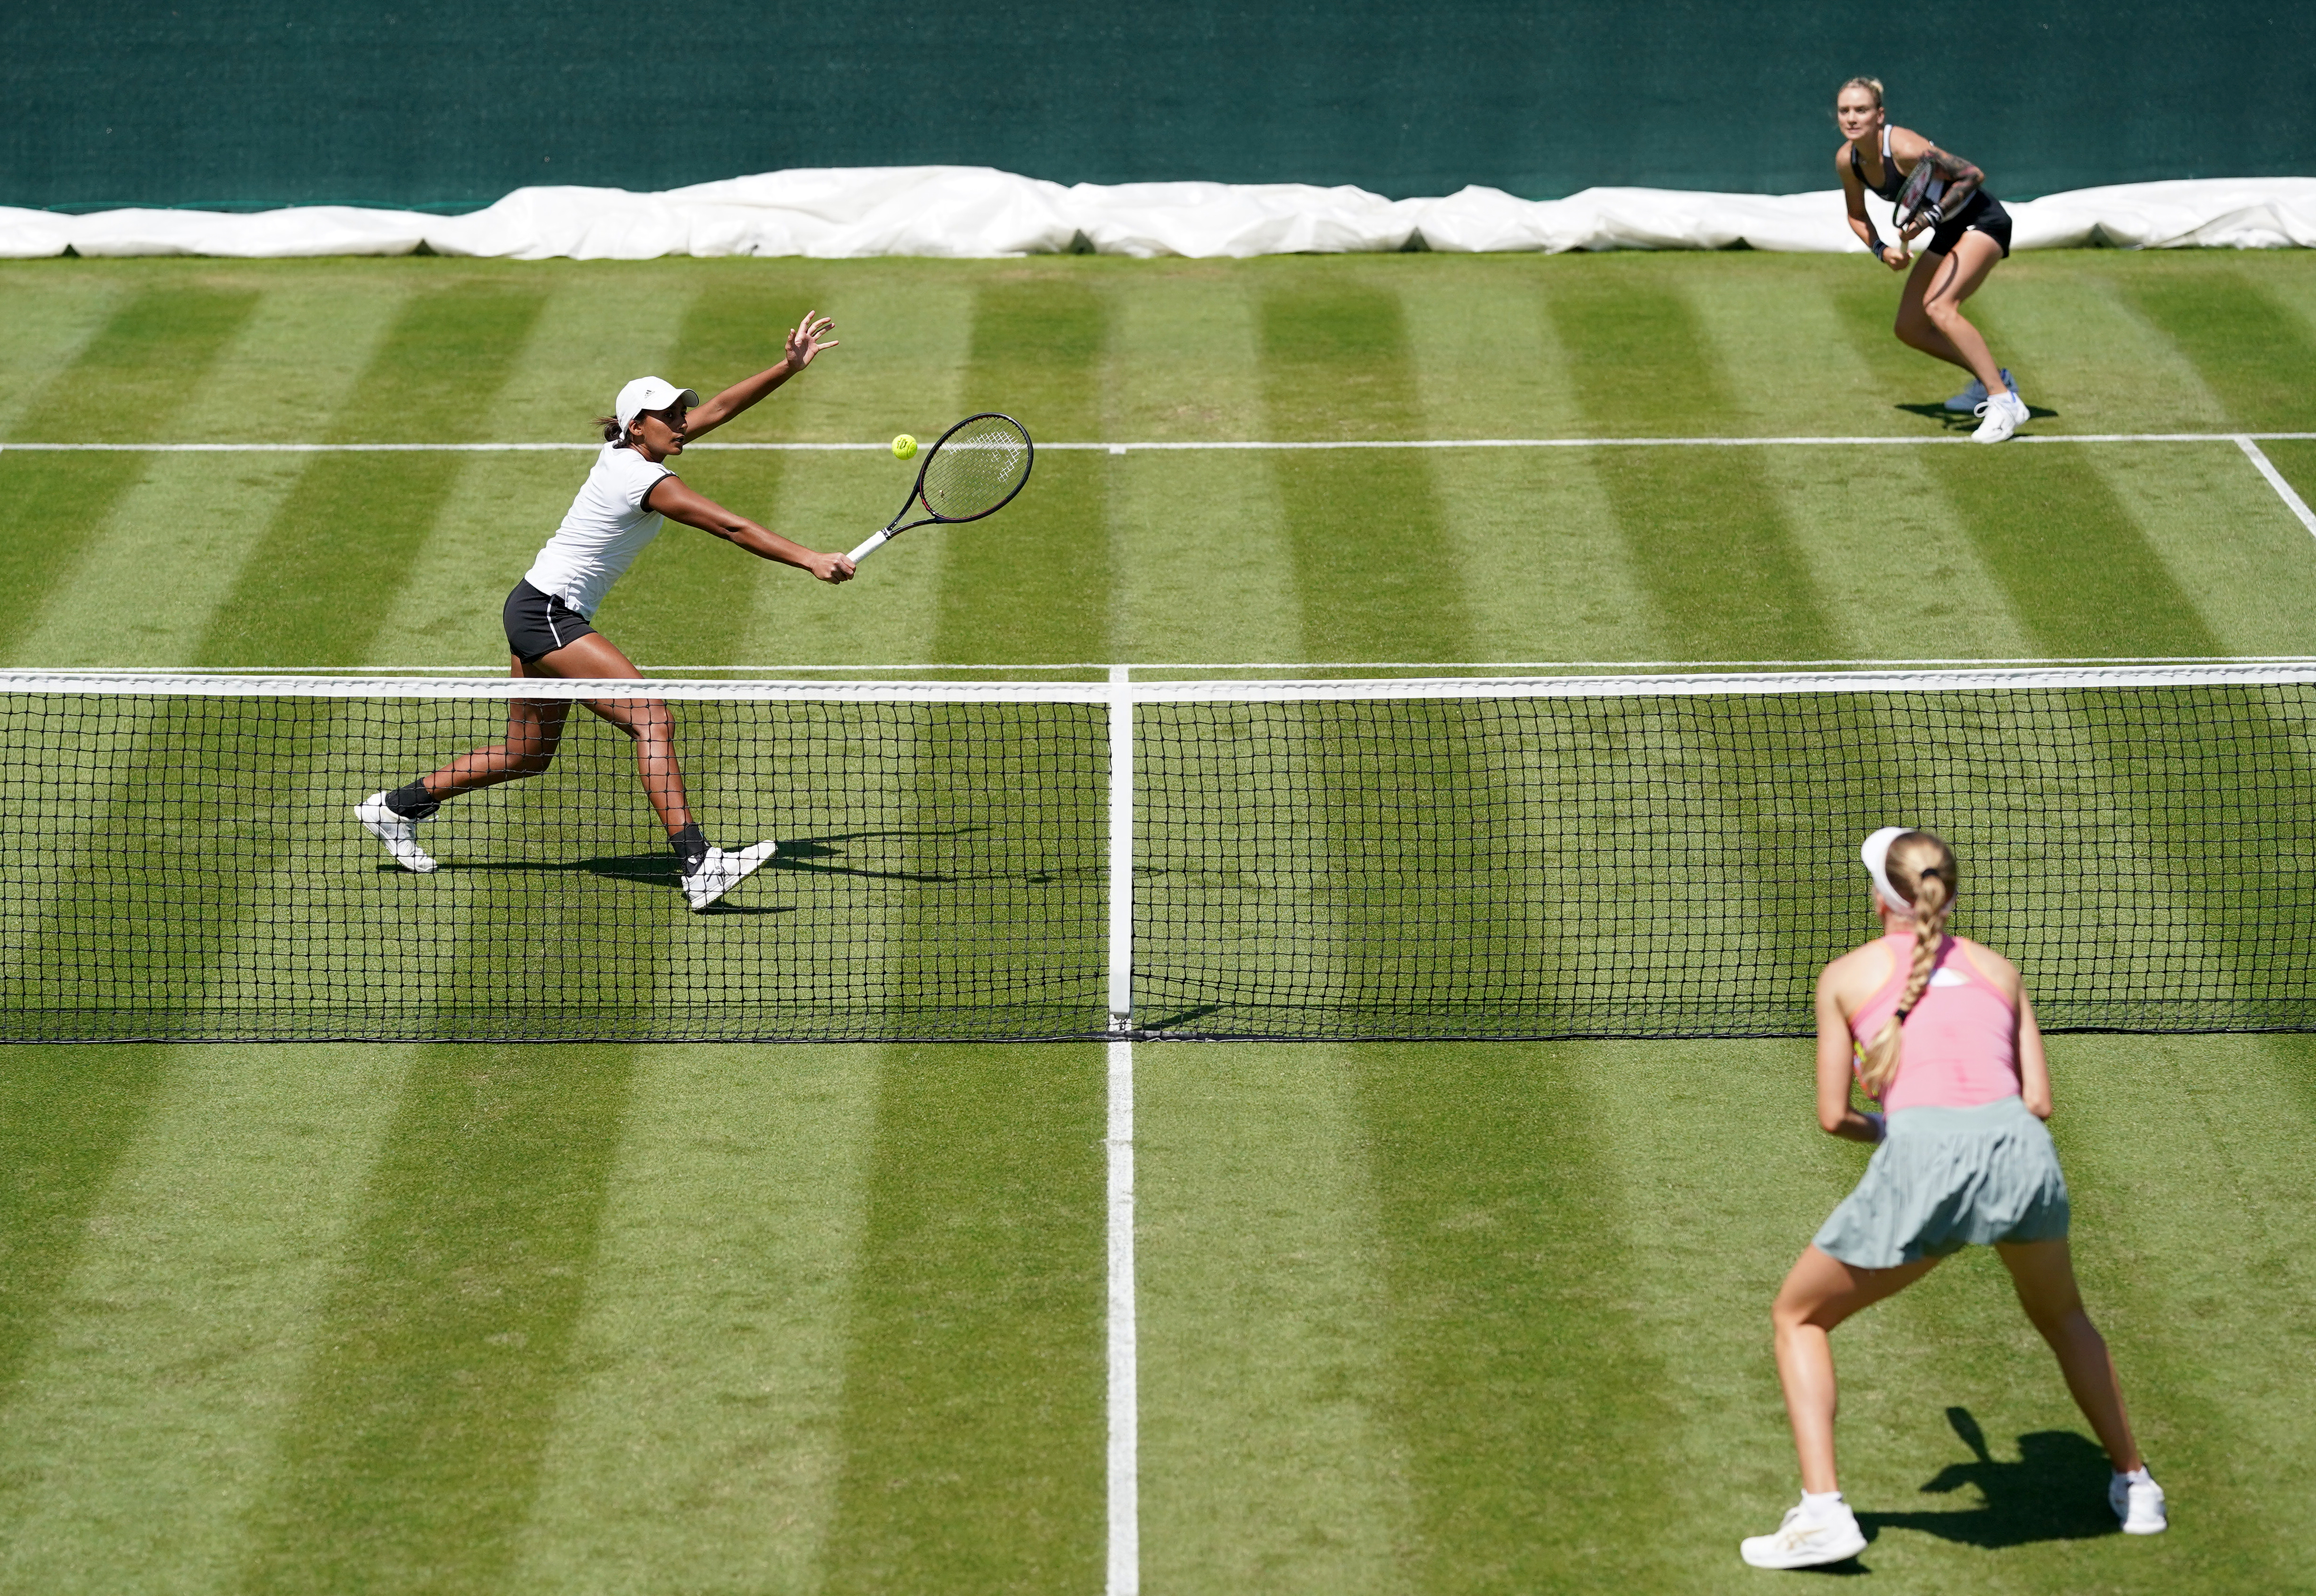 <p>Naiktha Bains (left) and Tereza Martincova in their doubles match against Heather Watson and Harriet Dart during day two of the Viking Classic at the Edgbaston Priory Club, Birmingham. Picture date: Tuesday June 15, 2021.</p>